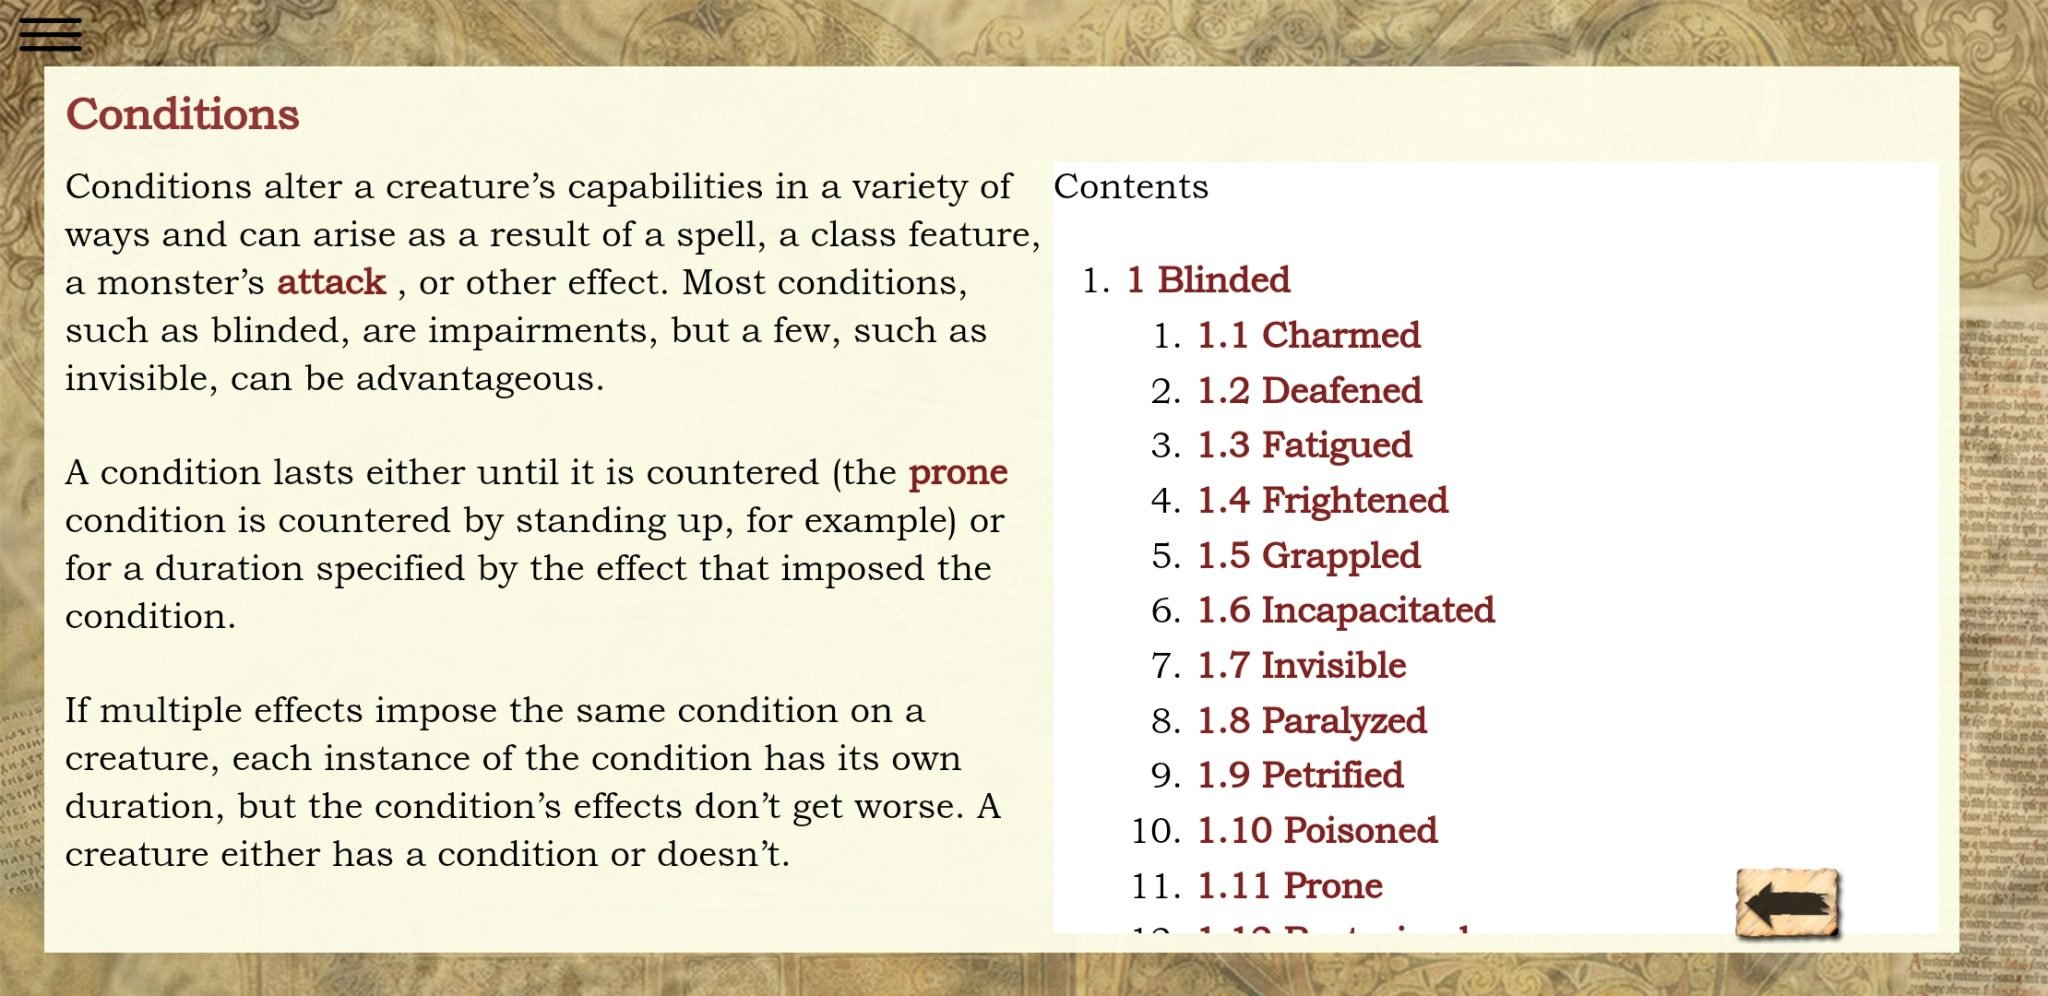 5e SRD conditions menu